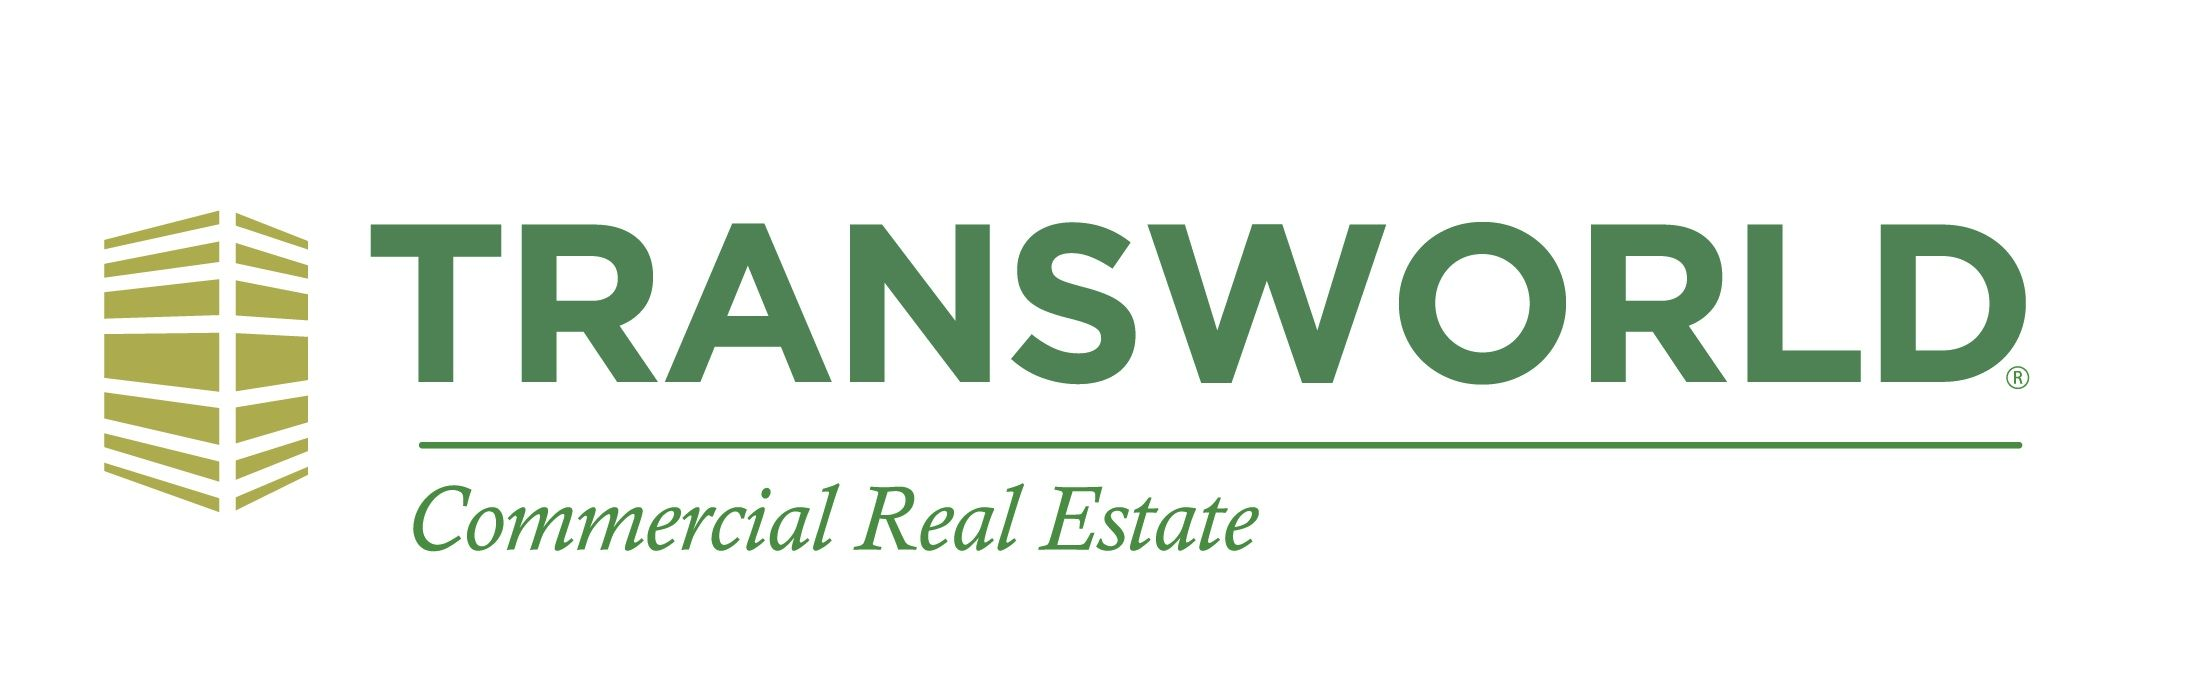 Transworld Commercial Real Estate Logo